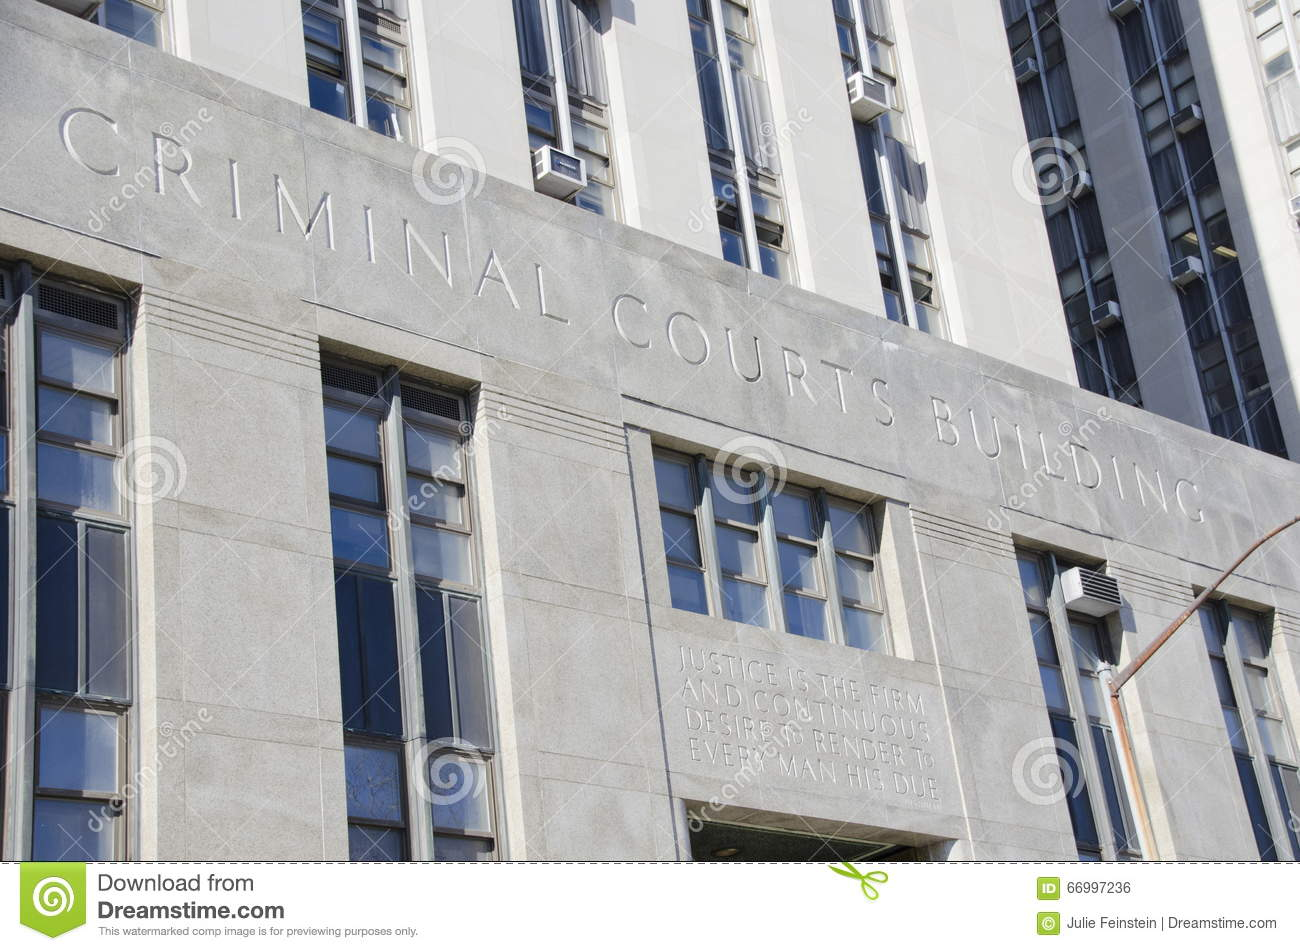 Manhattan Criminal Courts Building Editorial Photo - Image of